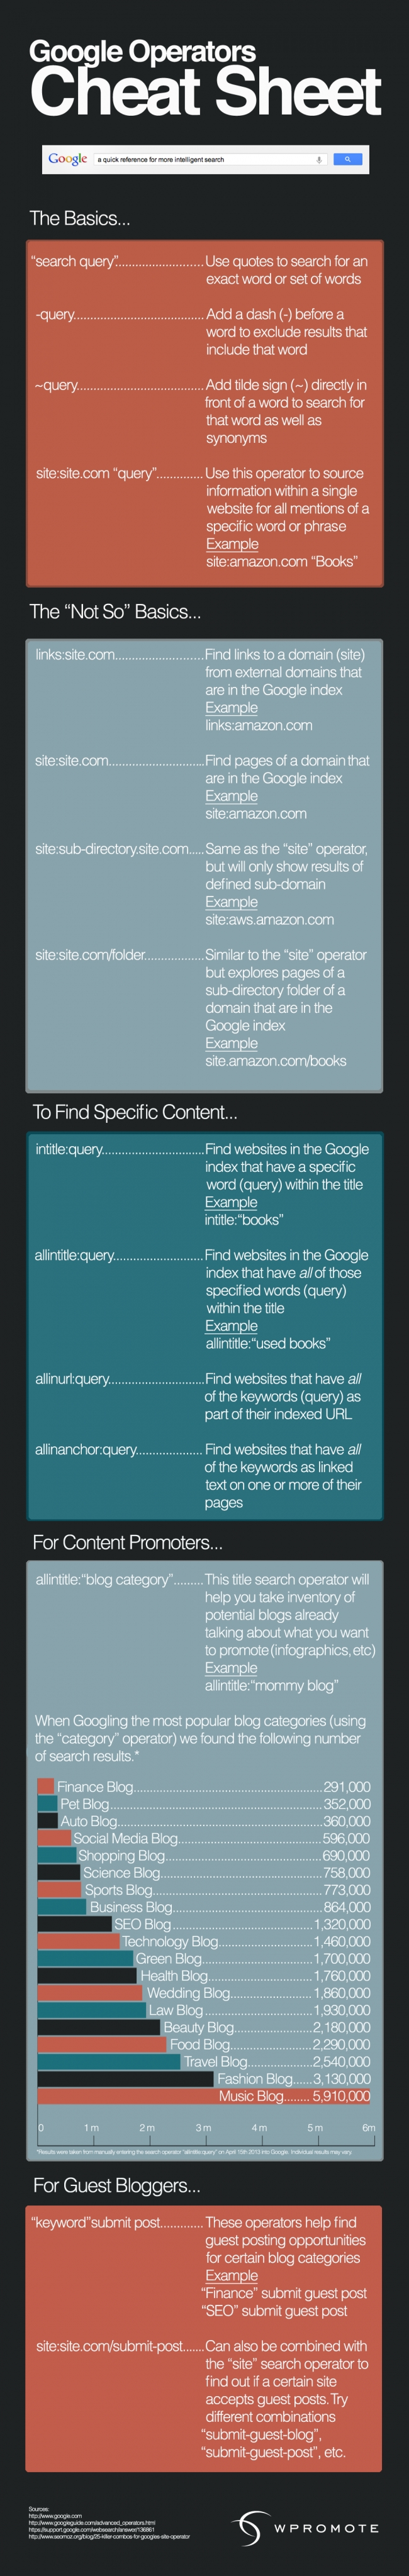 A-guide-to-google-operators-for-content-marketers